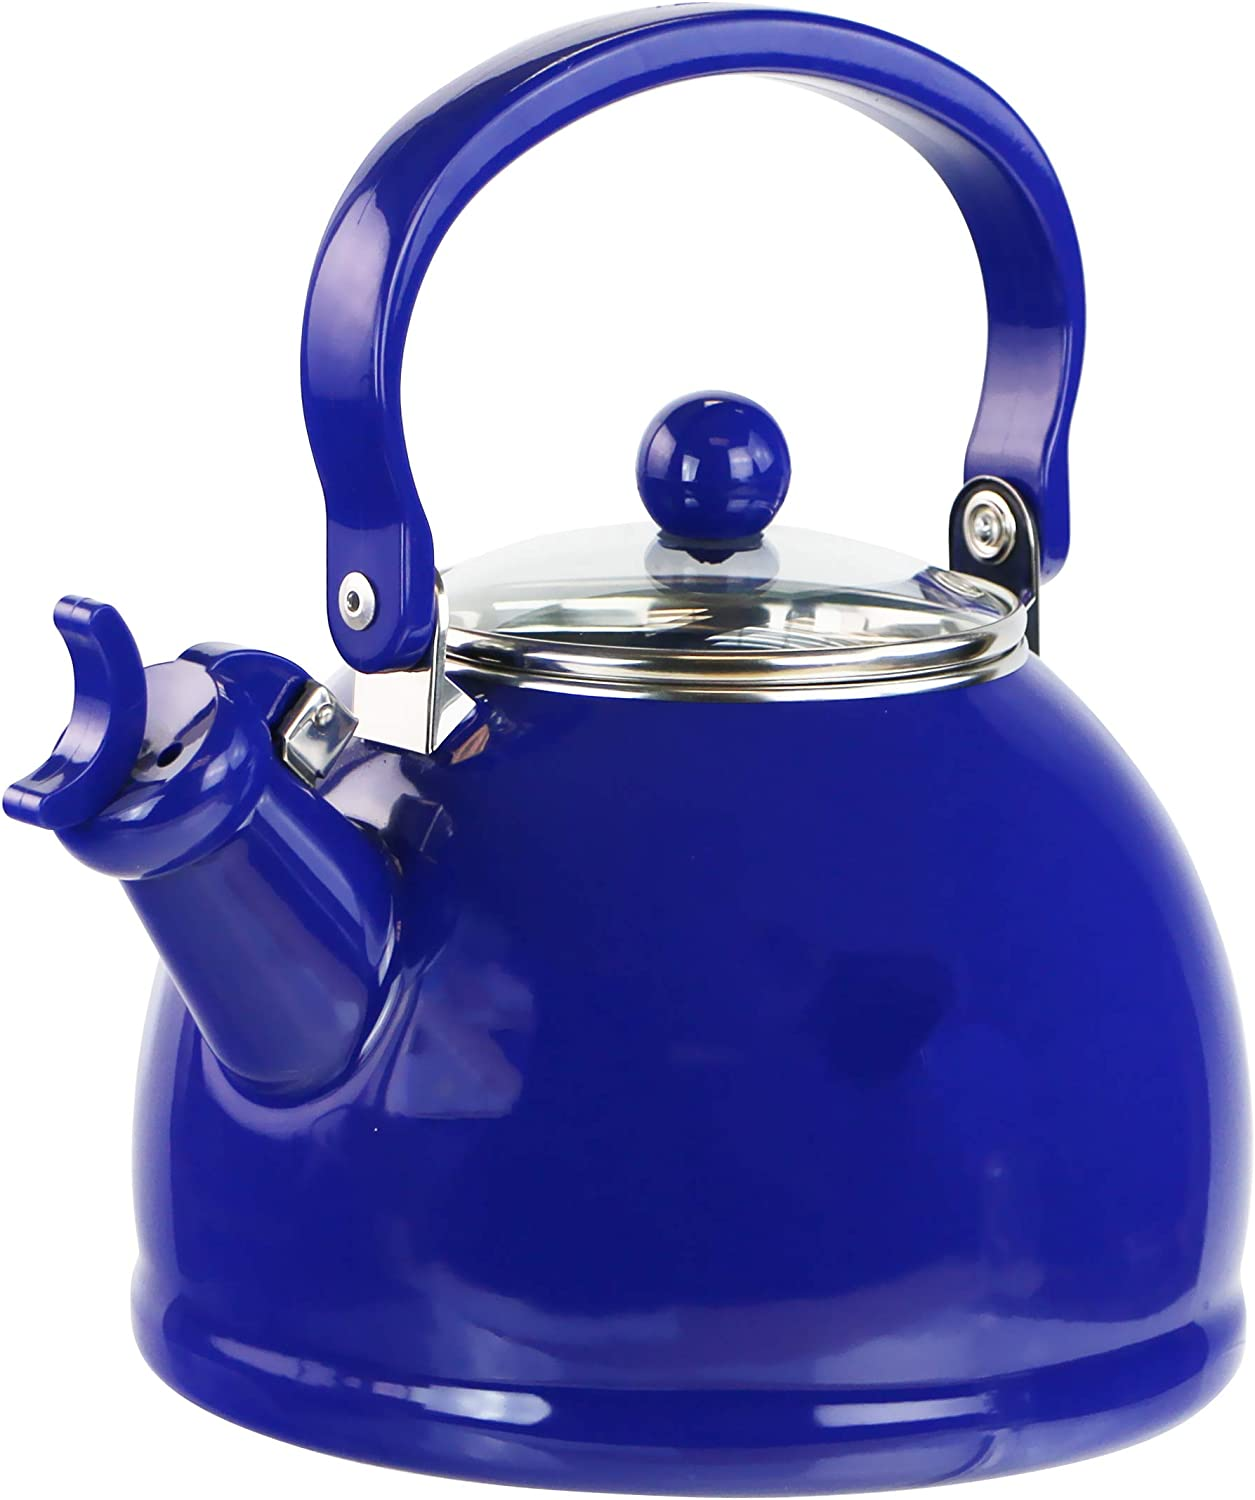 Reston Lloyd 2 Quart Enamel, Teakettle, Whistling kettle, Tea Pot, Indigo